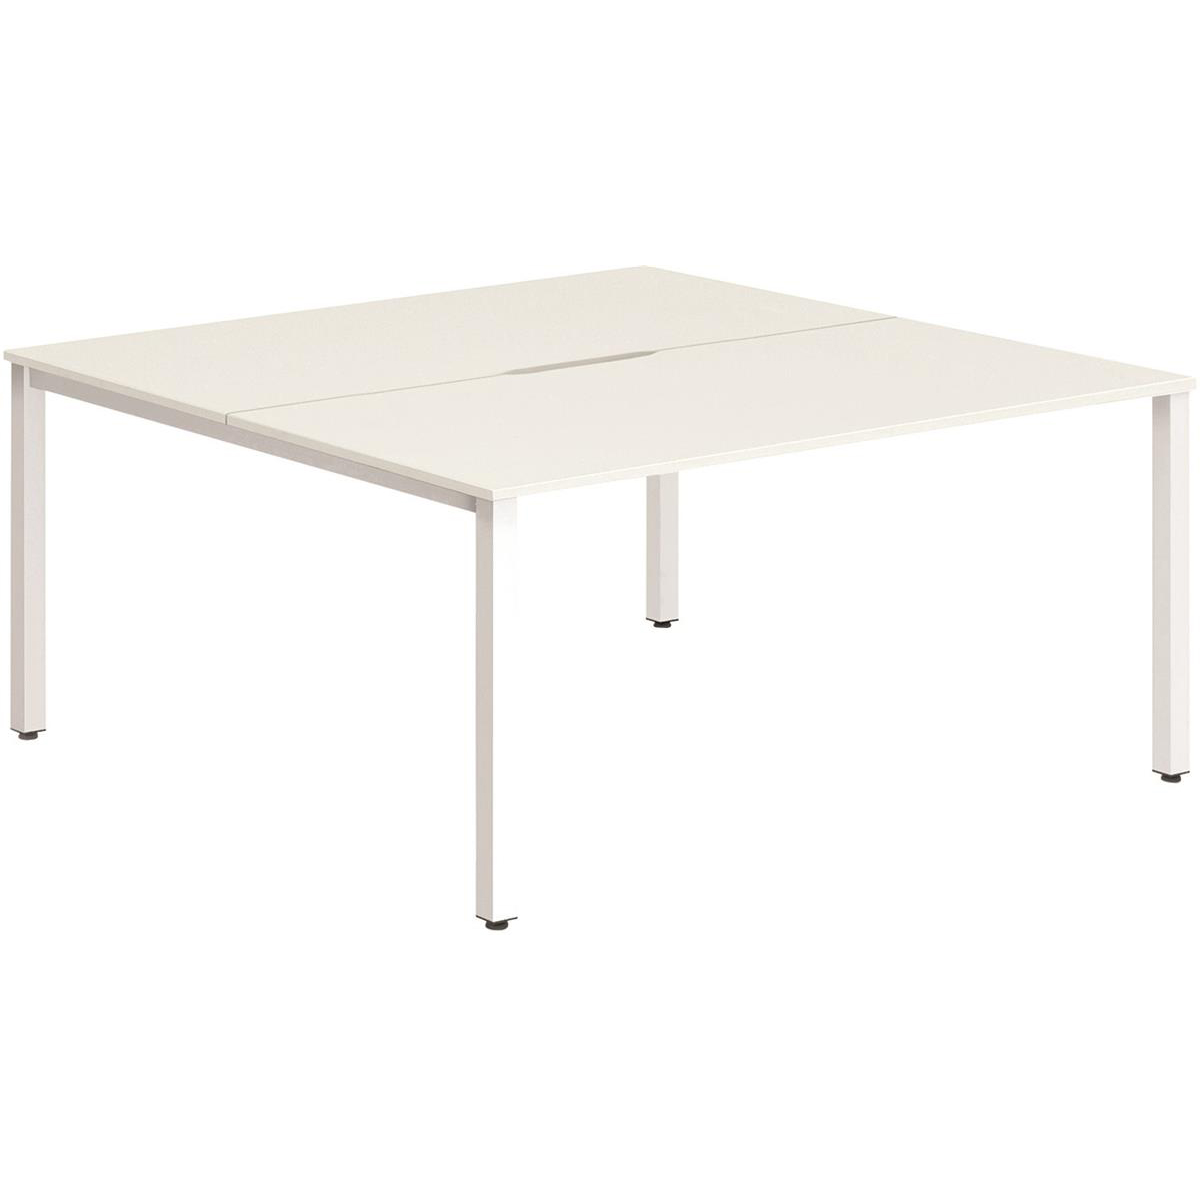 Trexus Bench Desk 2 Person Back to Back Configuration White Leg 1200x1600mm White Ref BE160